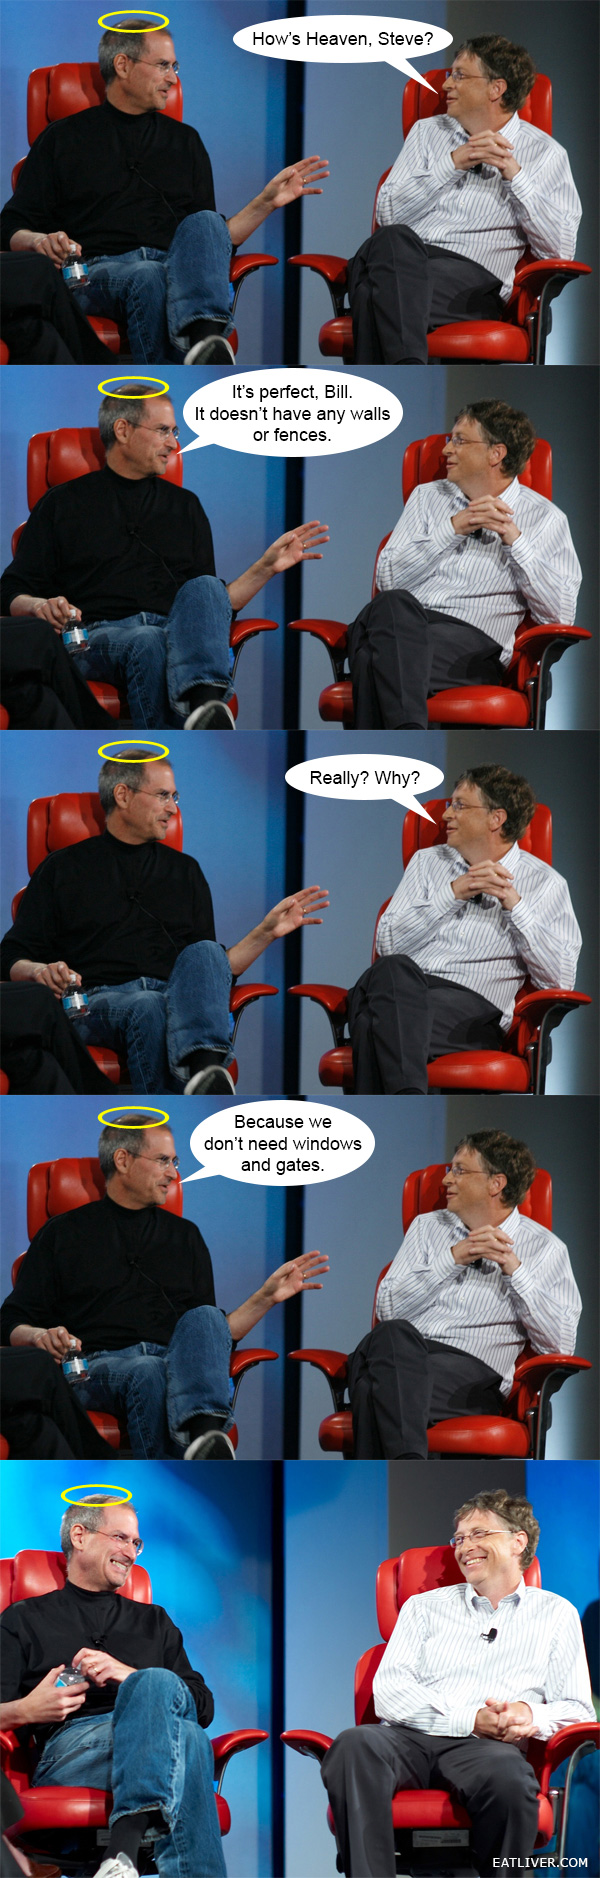 bill gates and steve jobs joke